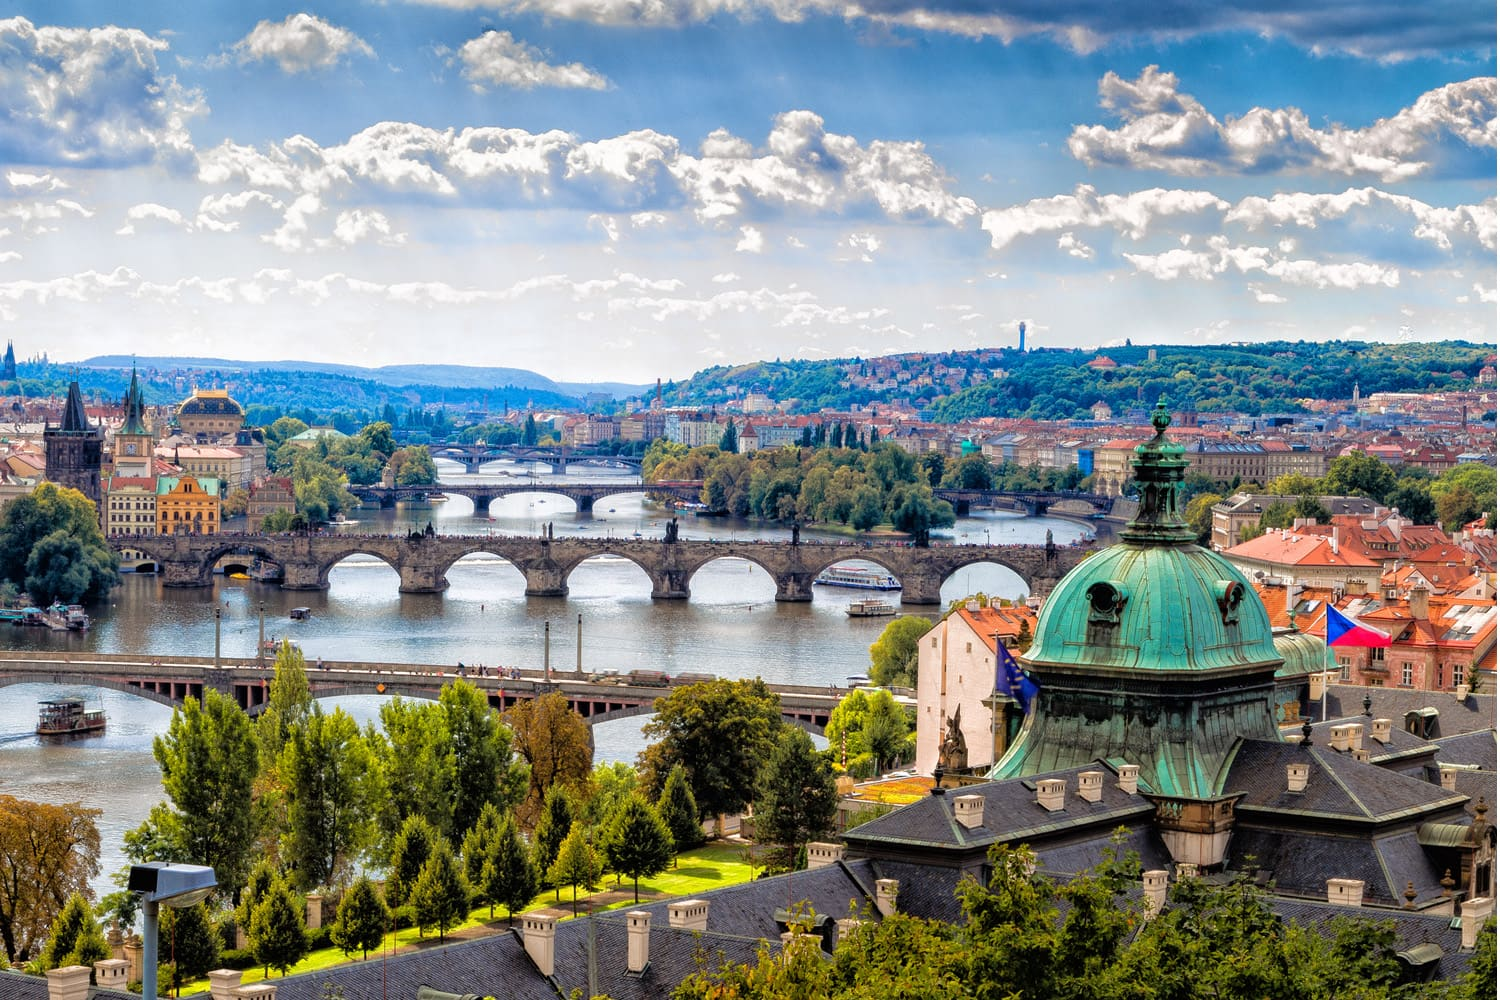 Prague rated among the 50 most beautiful cities in the world